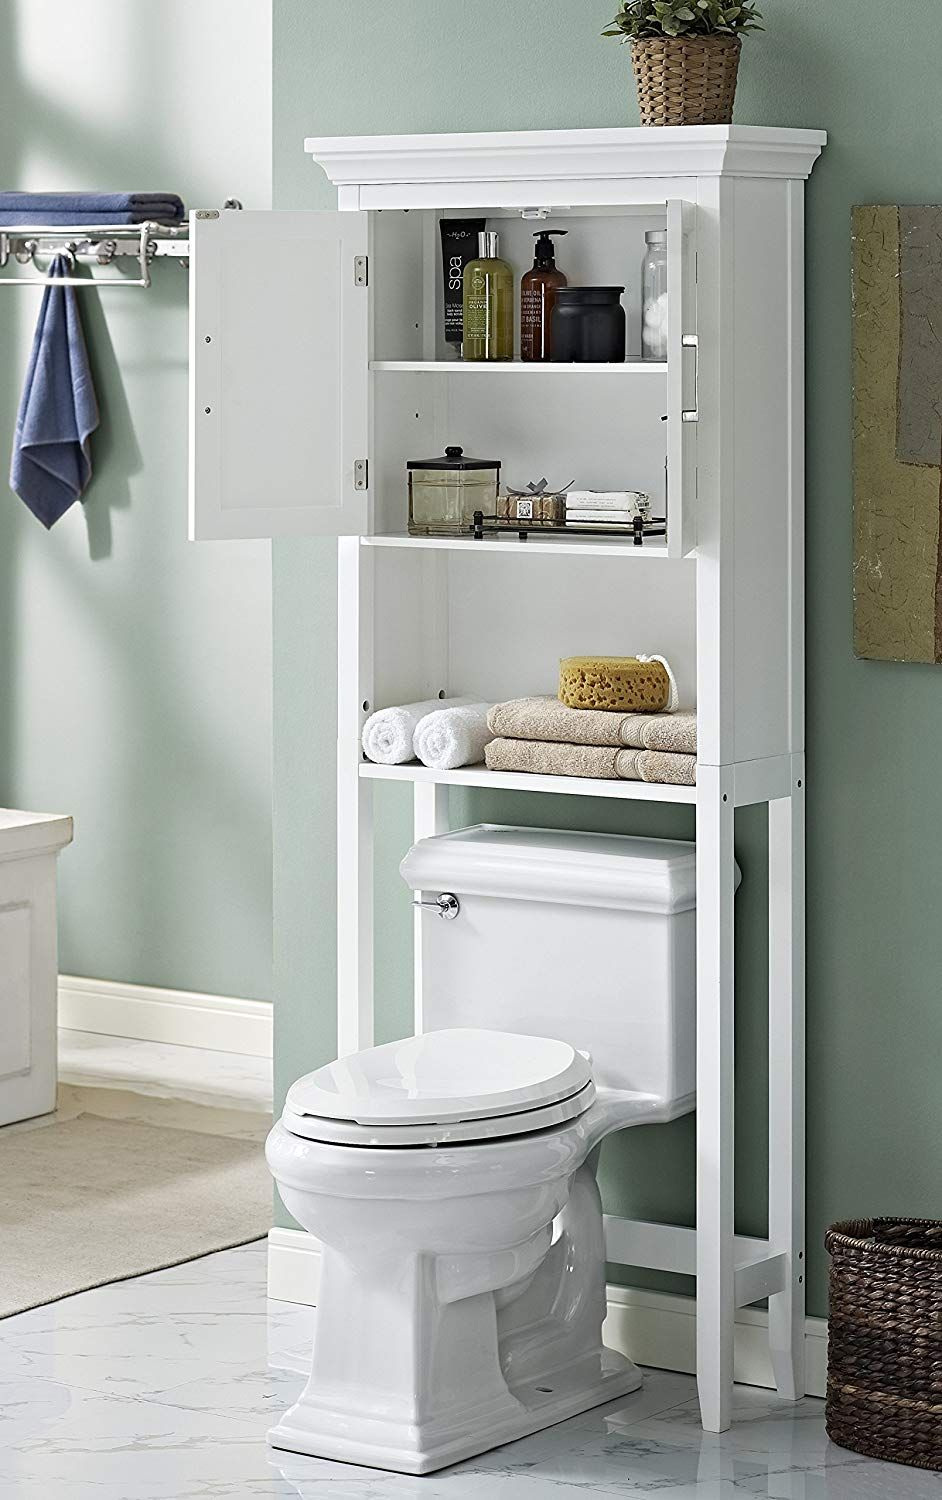 Best Over The Toilet Storage Cabinets Toilet Storage Over The Toilet Storage Cabinet Storage Cabinets Top of toilet storage